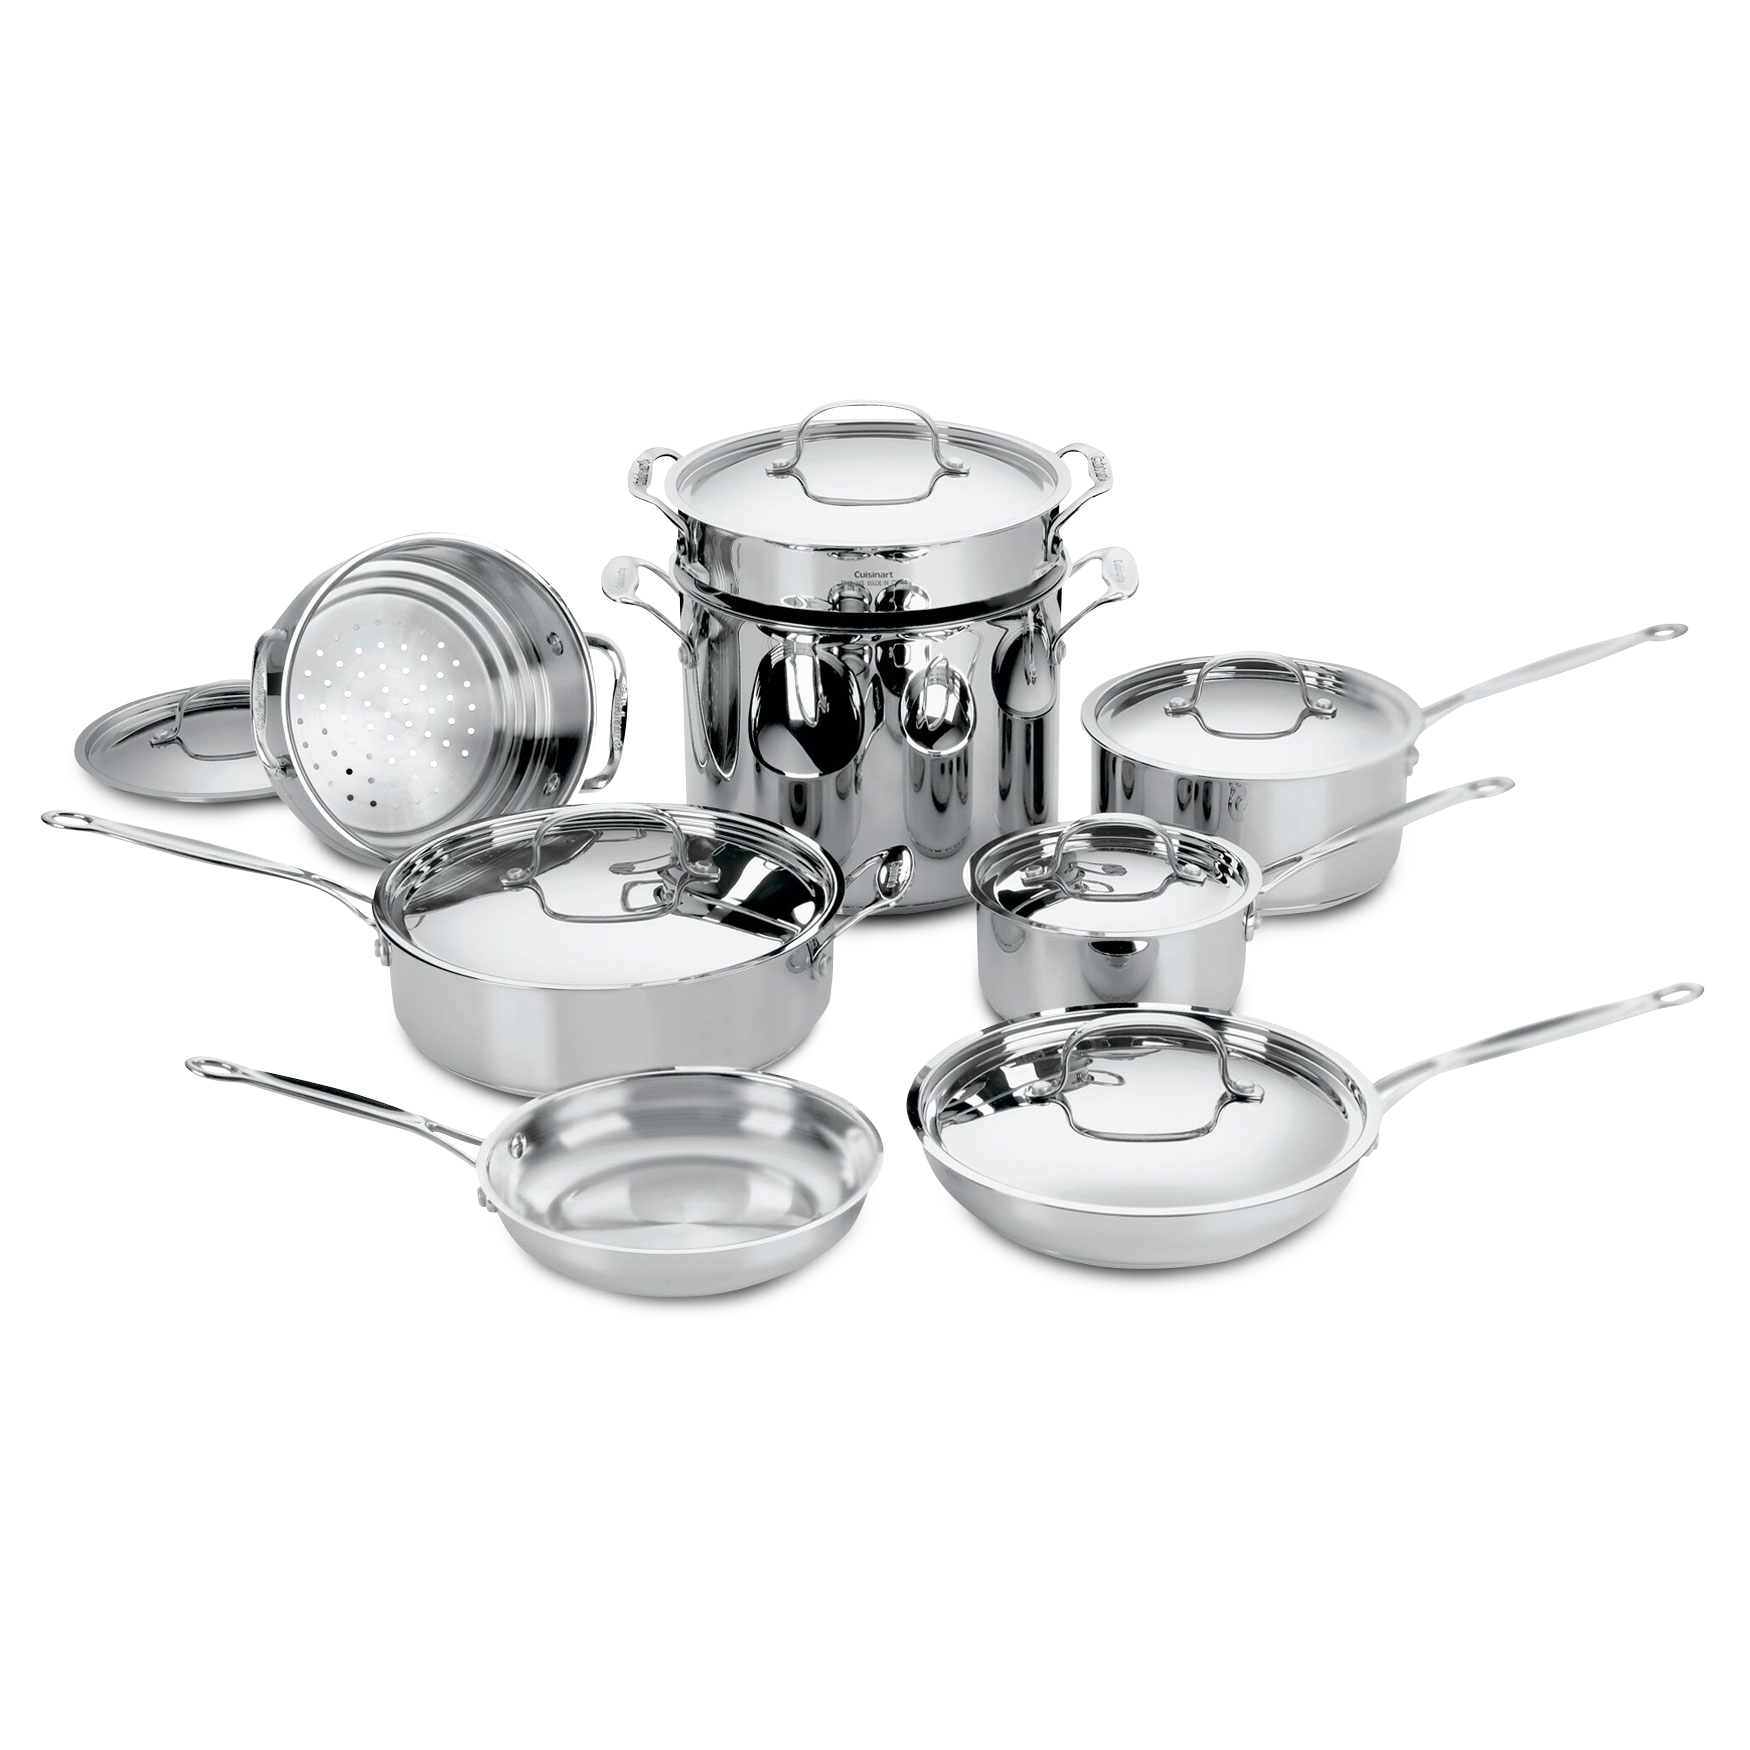 Cuisinart Chef's Classic Stainless 14-Pc. Set, STAINLESS